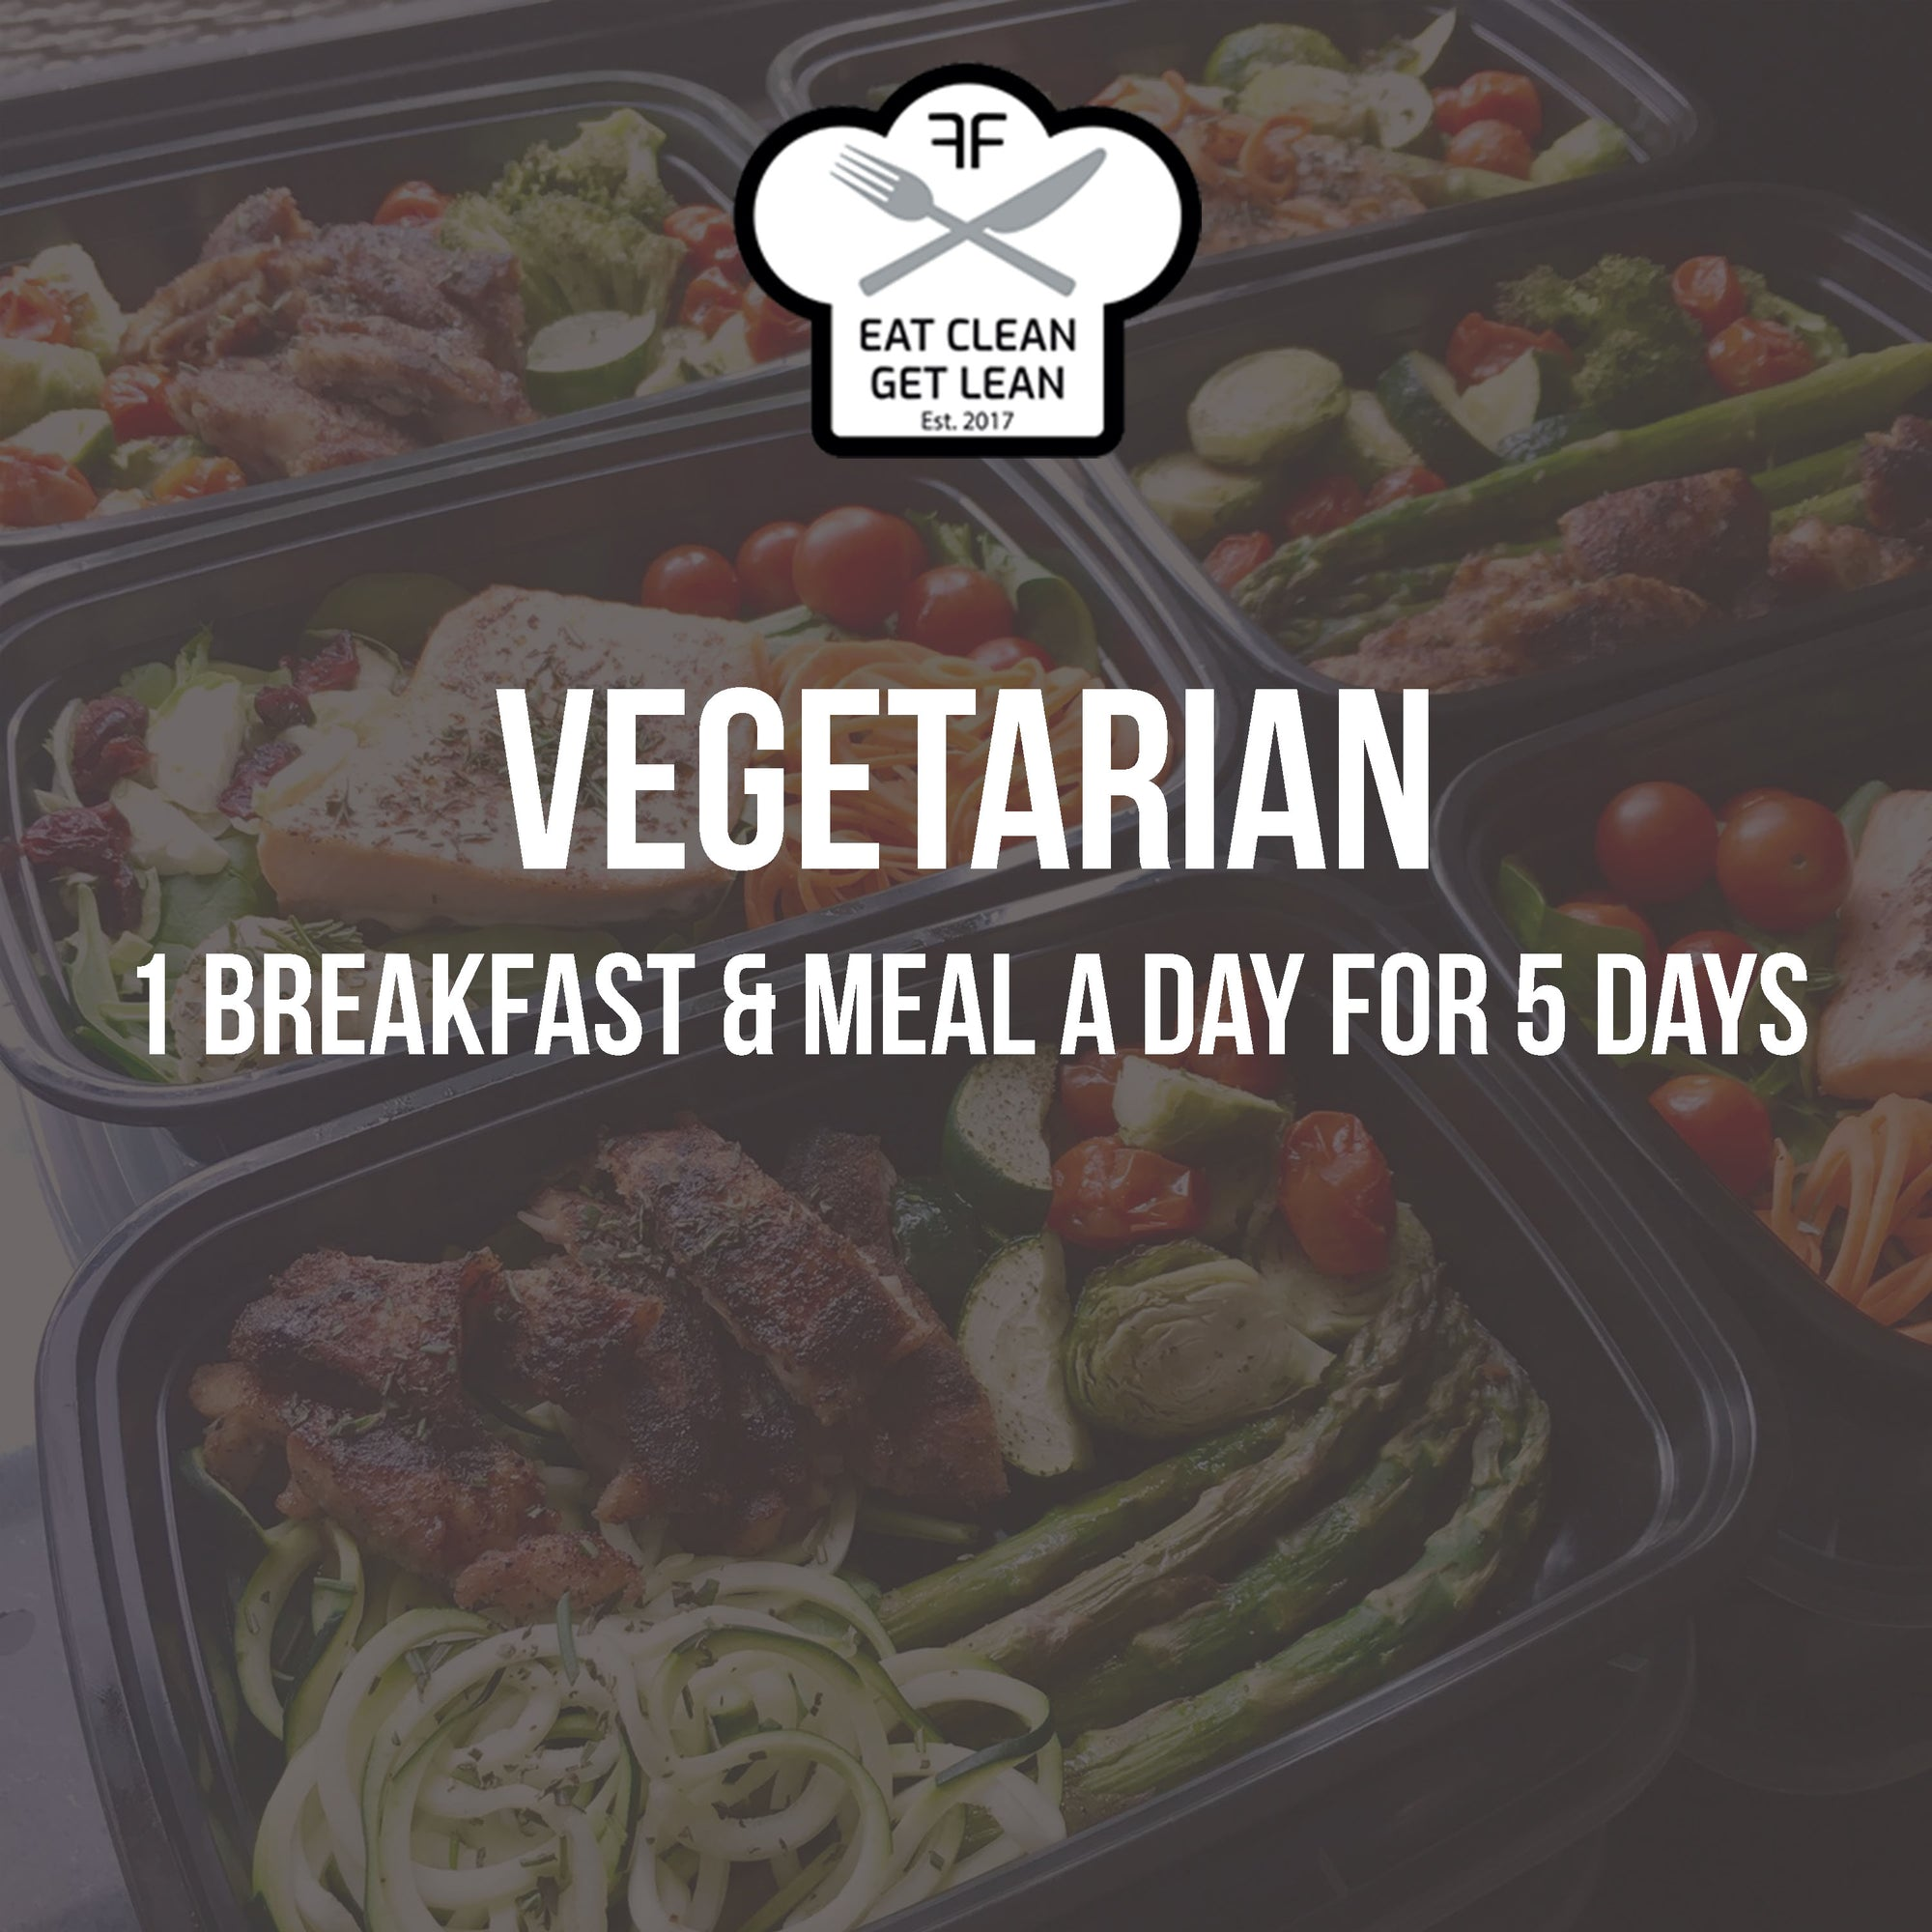 WEEKLY ORDER: 1 Vegetarian Breakfast & Meal a Day for 5 Days